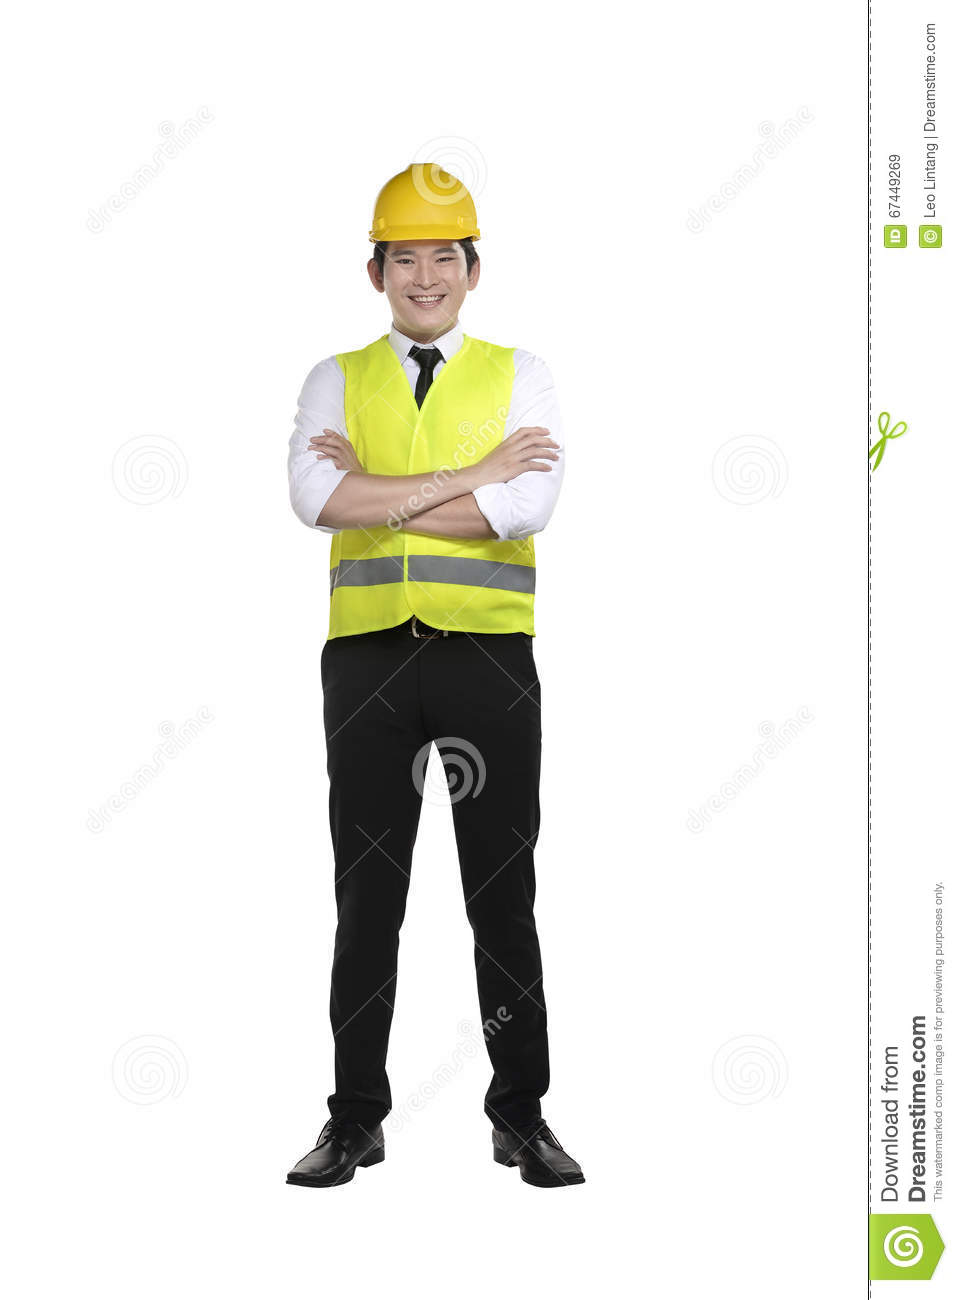 Labor Safety Asian Worker Wearing Safety Vest And Yellow Helmet Stock Image